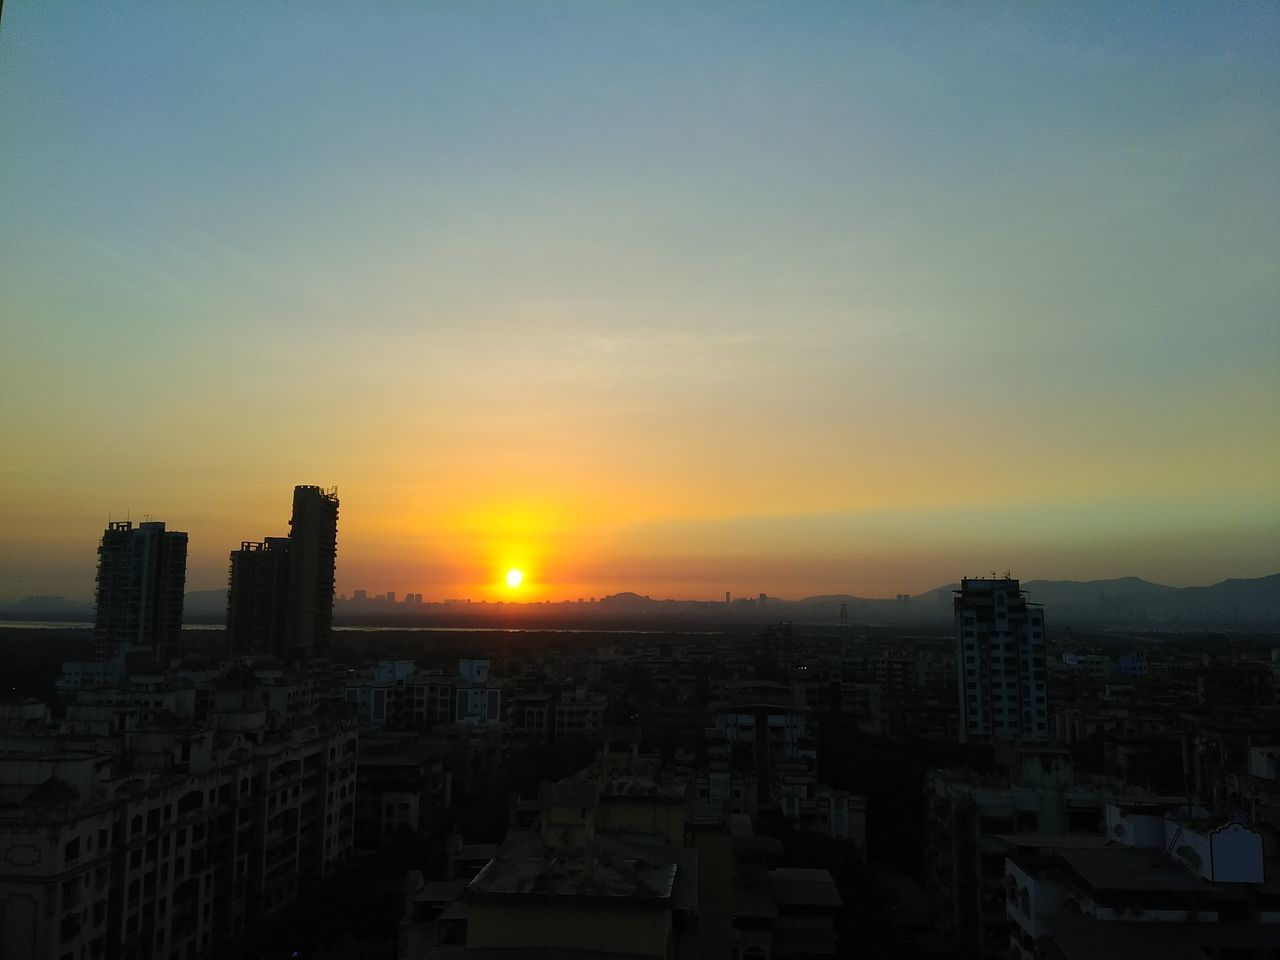 Cityscape Sunset Building Exterior City Architecture High Angle View Sky Urban Skyline Travel Destinations Skyscraper Built Structure Residential Building City Life Cloud - Sky Modern Outdoors No People Downtown District NoEdits  No Filter Cityscape Tower Top Calm Sky Awesome_sky